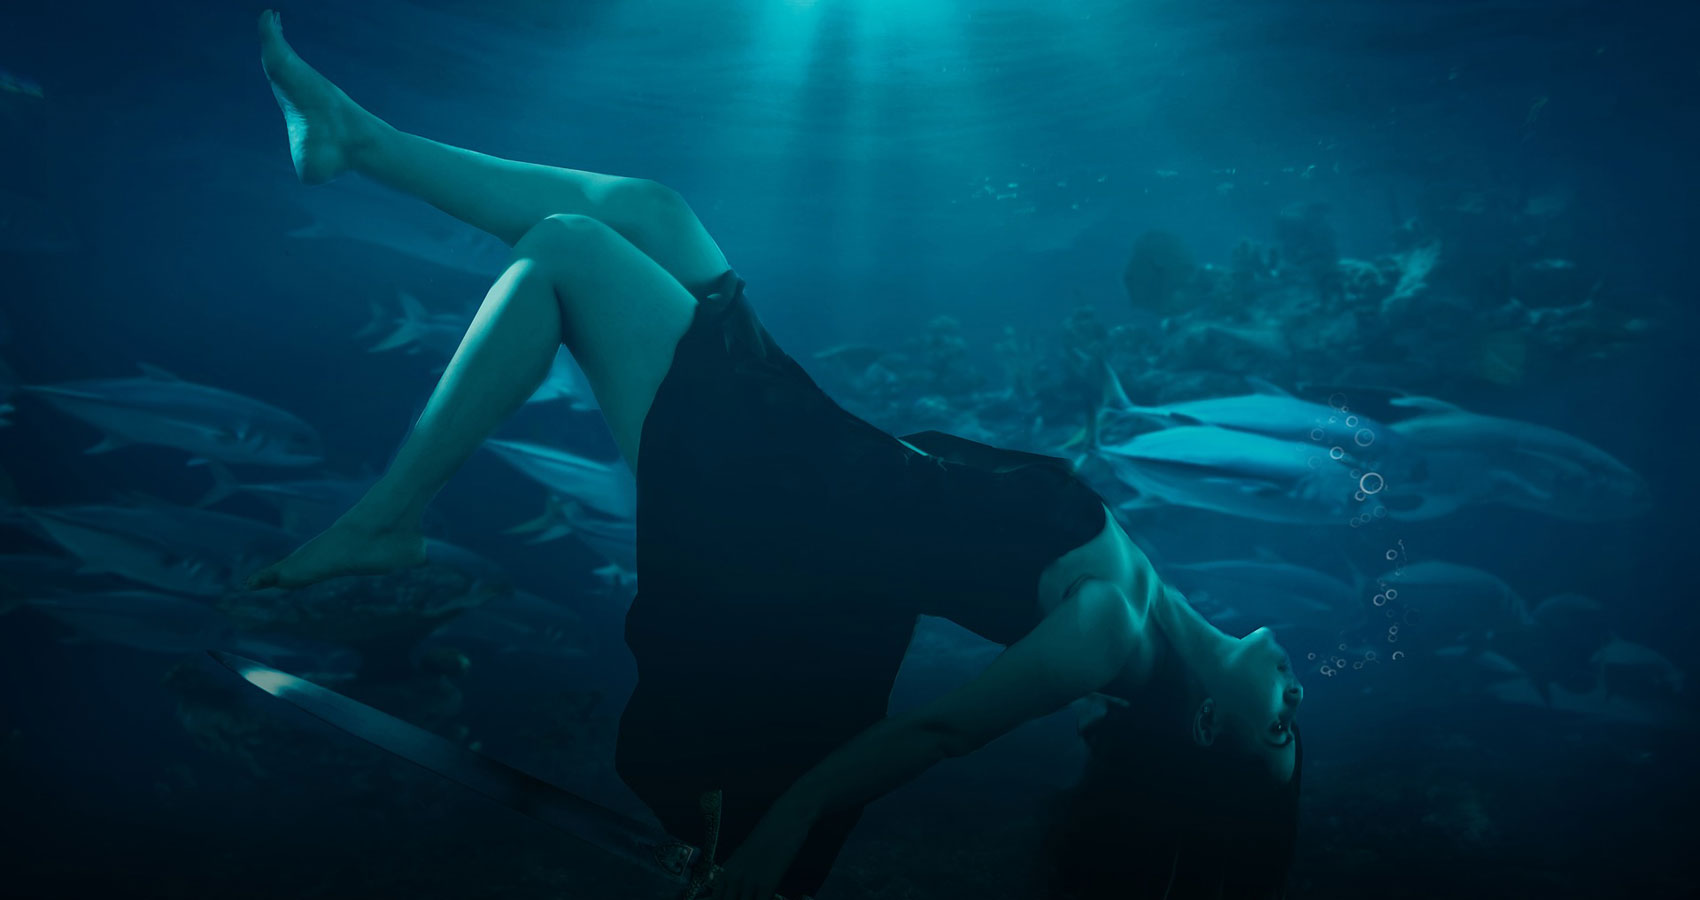 Talking to the Water, poetry by Angie Brocker at Spillwords.com